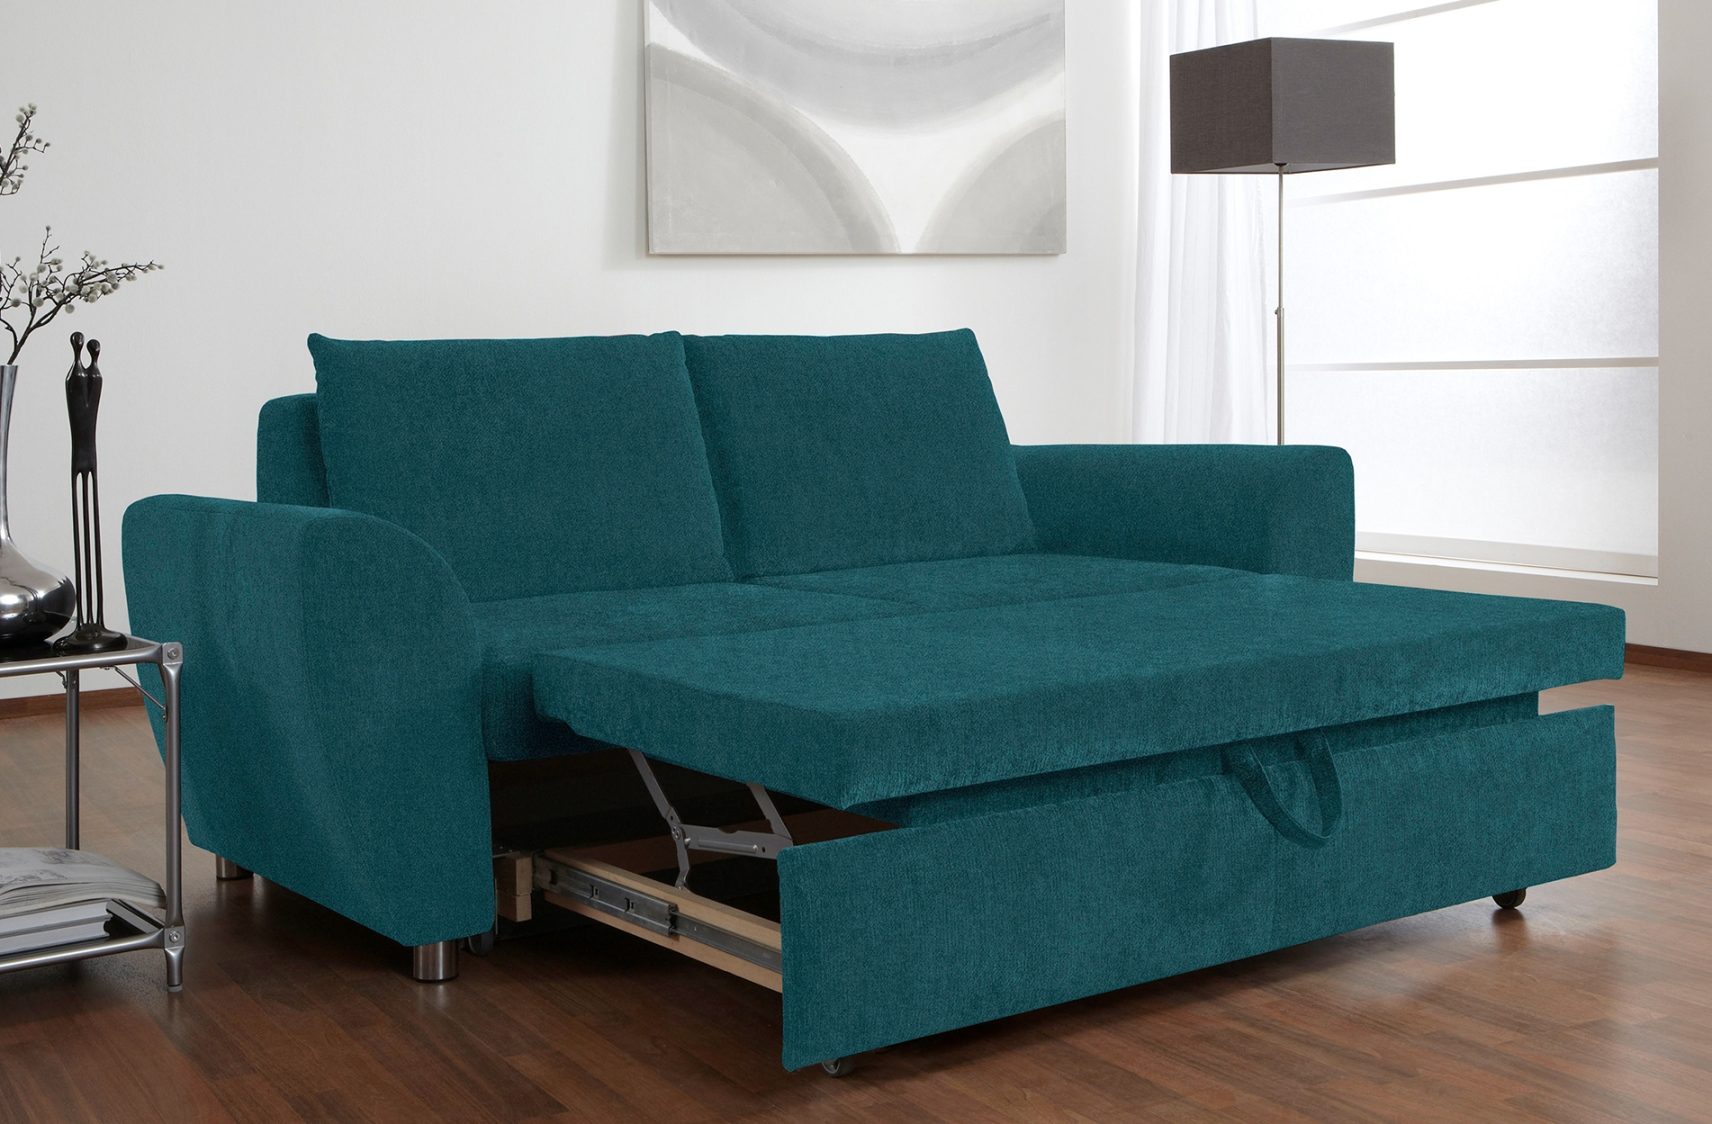 Essen sleeper sofa the best pull out sofa bed by nordholtz Loveseat with pullout bed